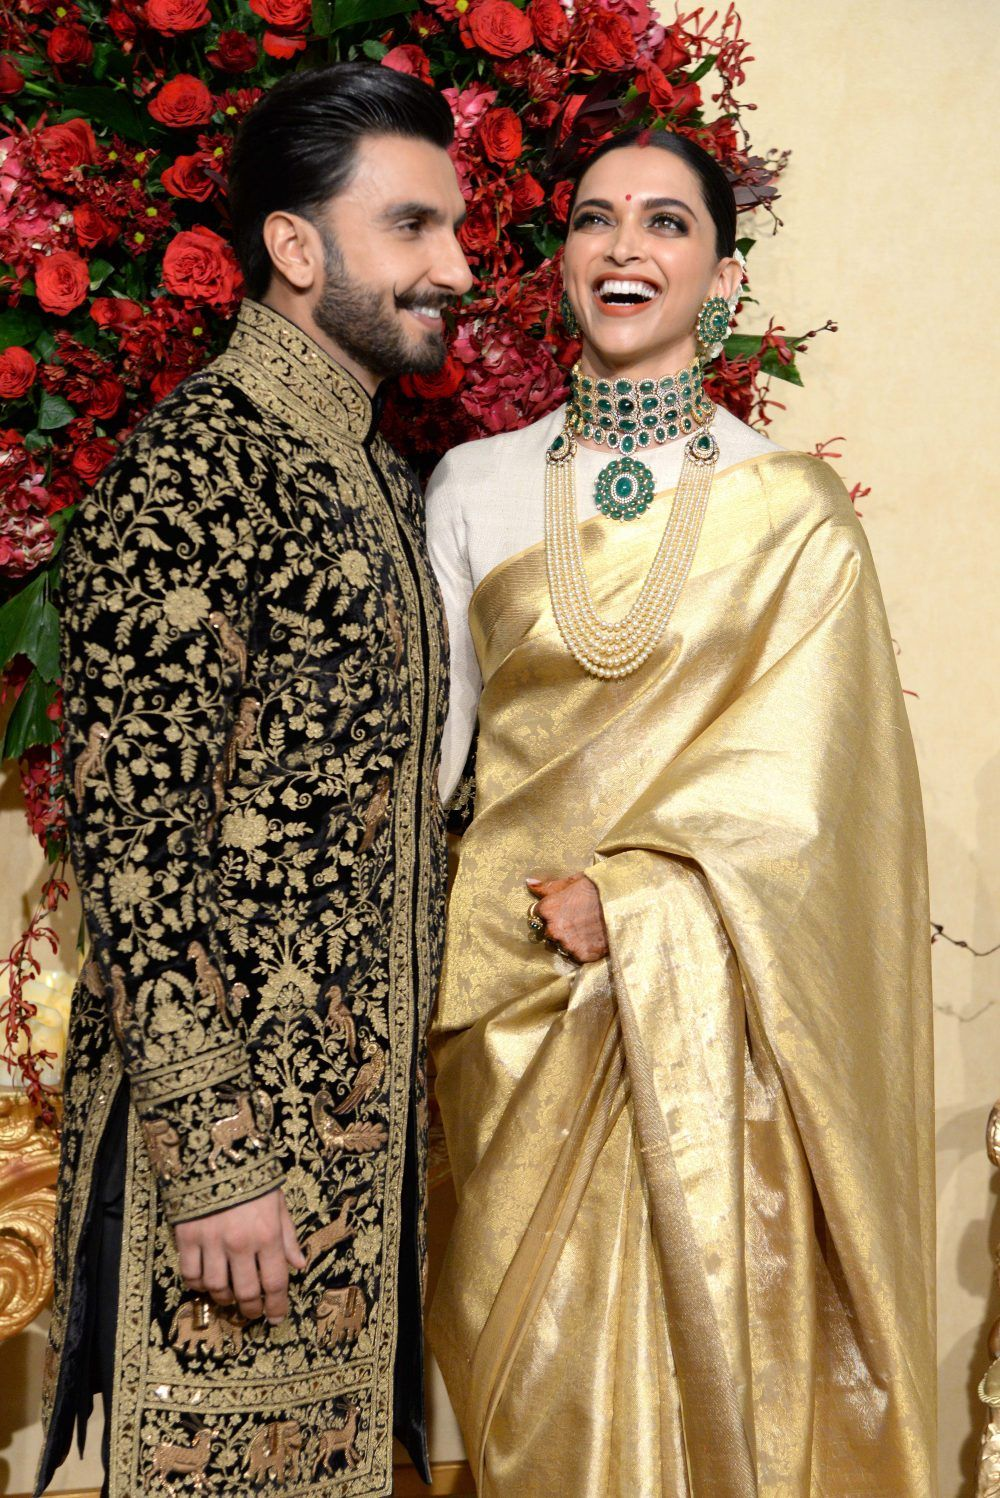 Pin By Style Trends On Deepika Wedding Collection Wedding Dresses Men Indian Sherwani For Men Wedding Wedding Dress Men